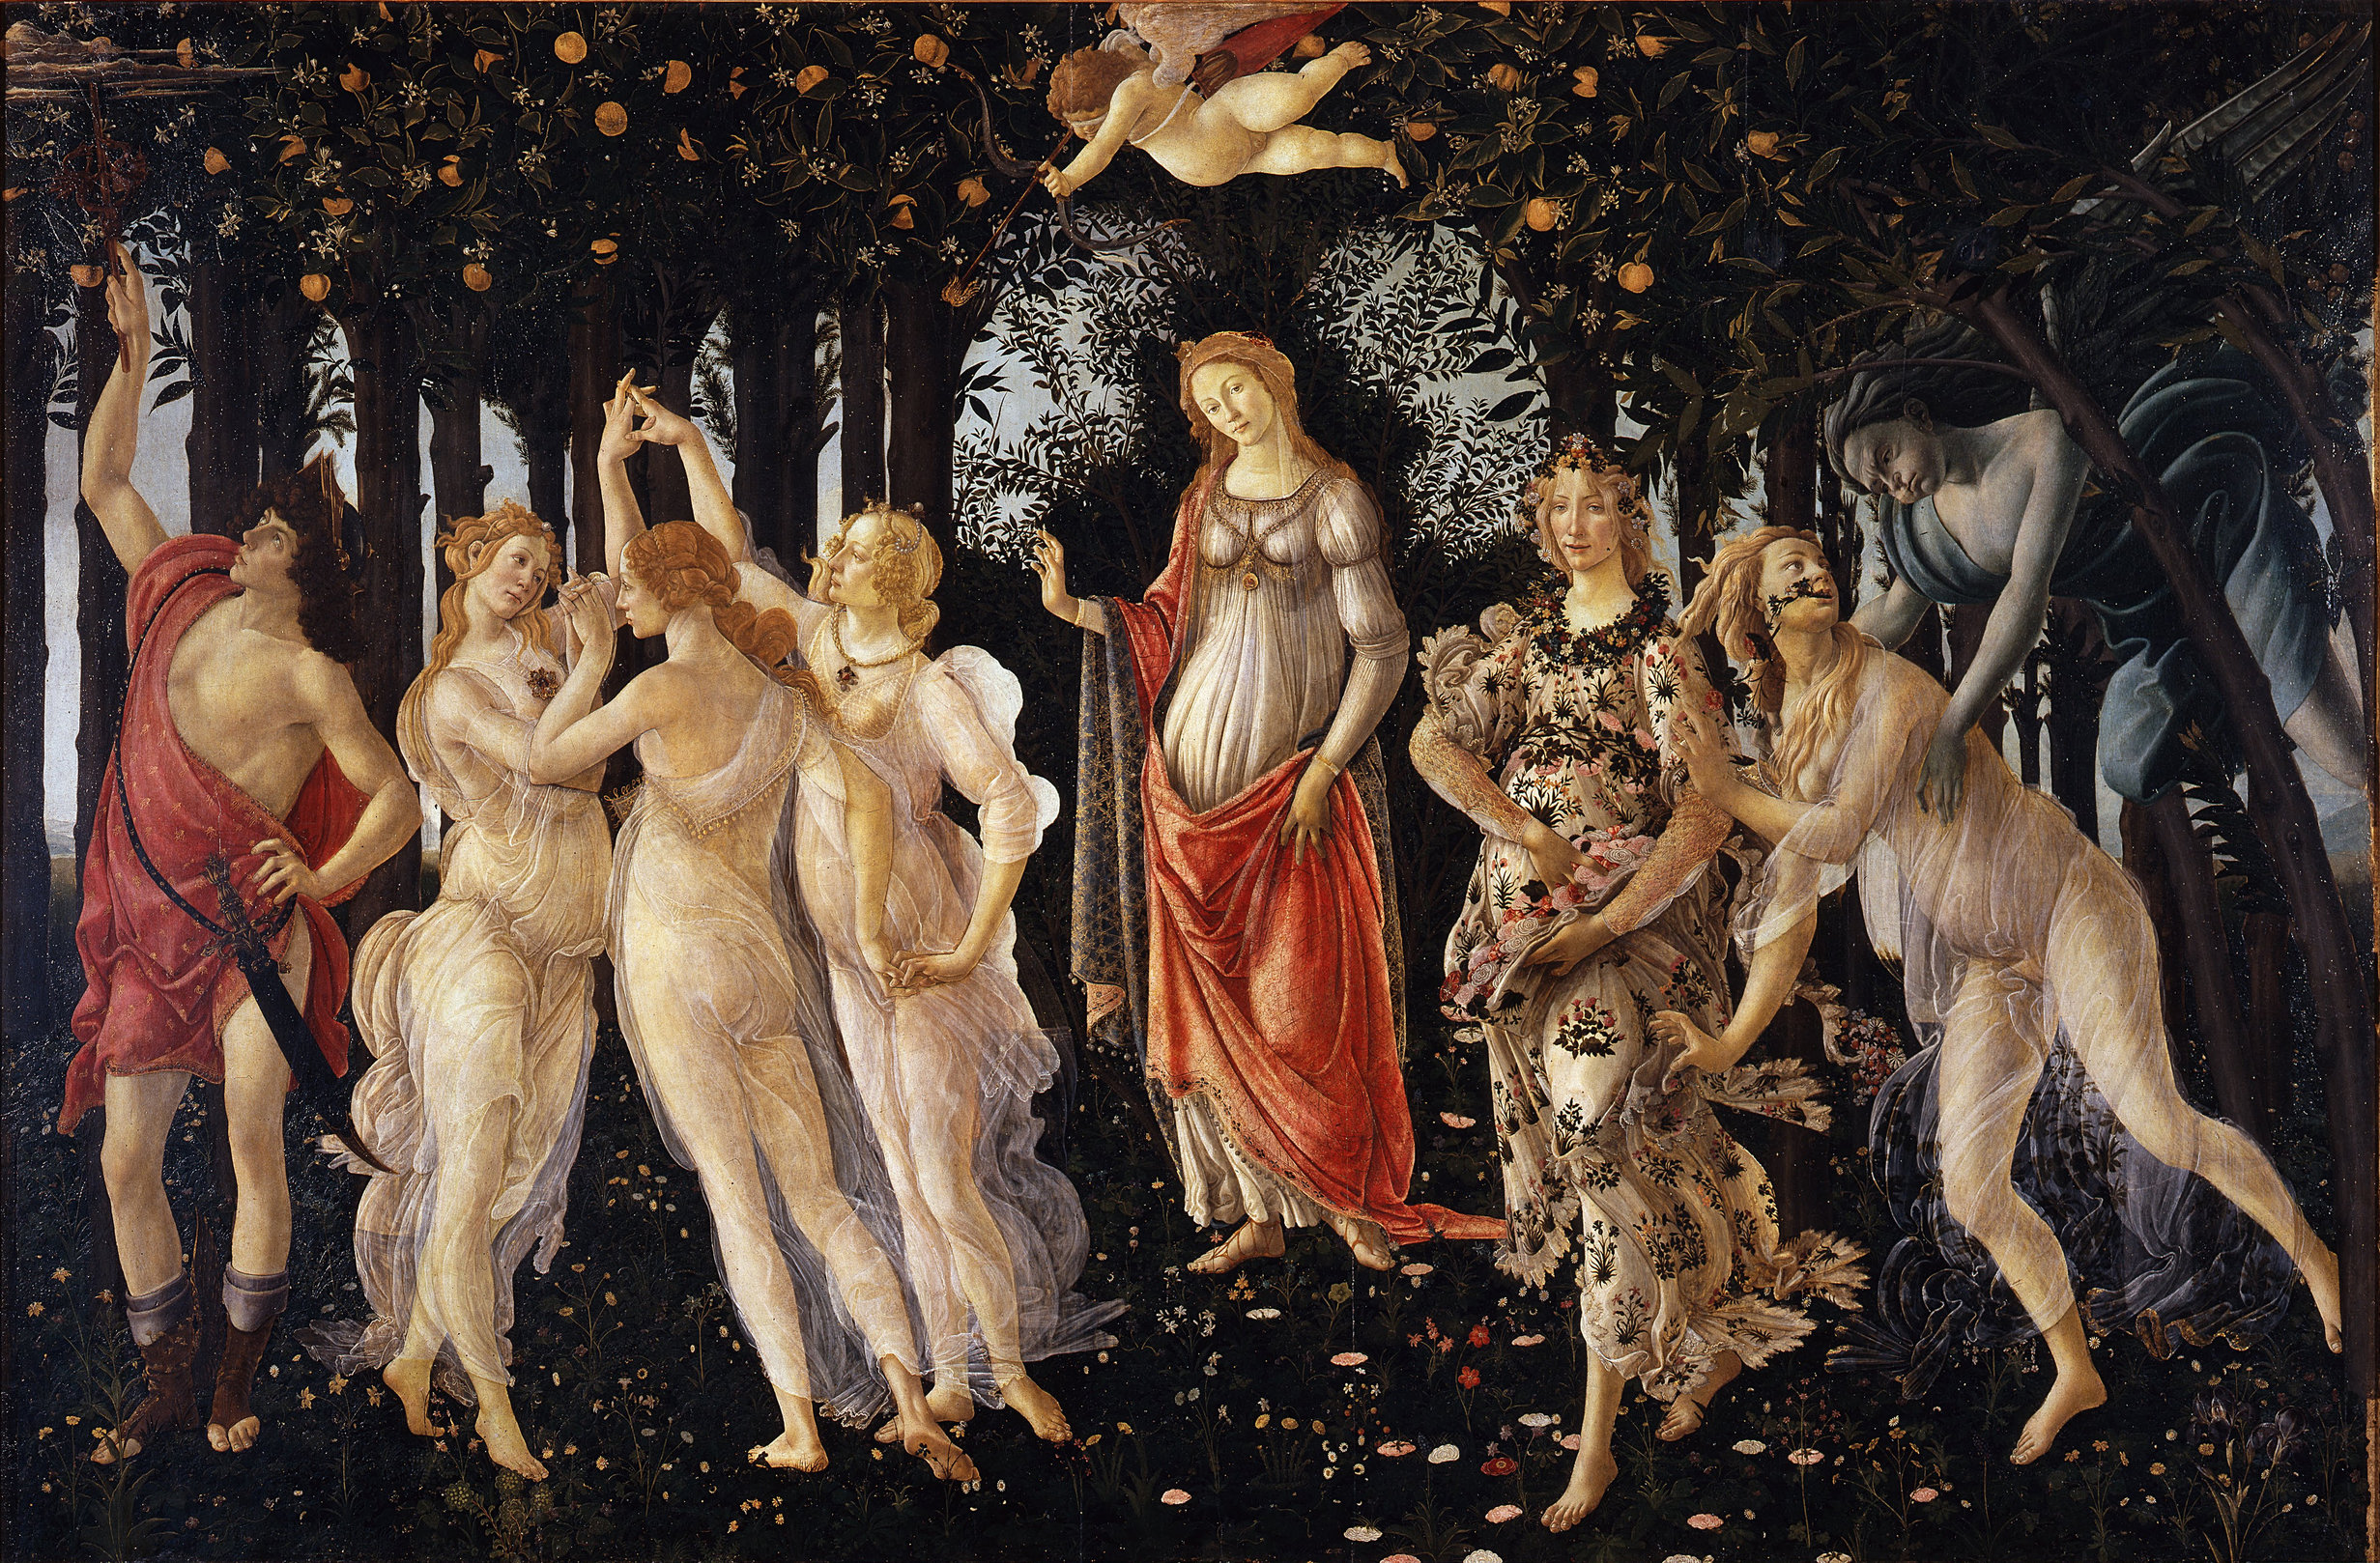 "BAHAR ALEGORİSİ ""ALLEGORY OF SPRING"" – BOTTICELLI"